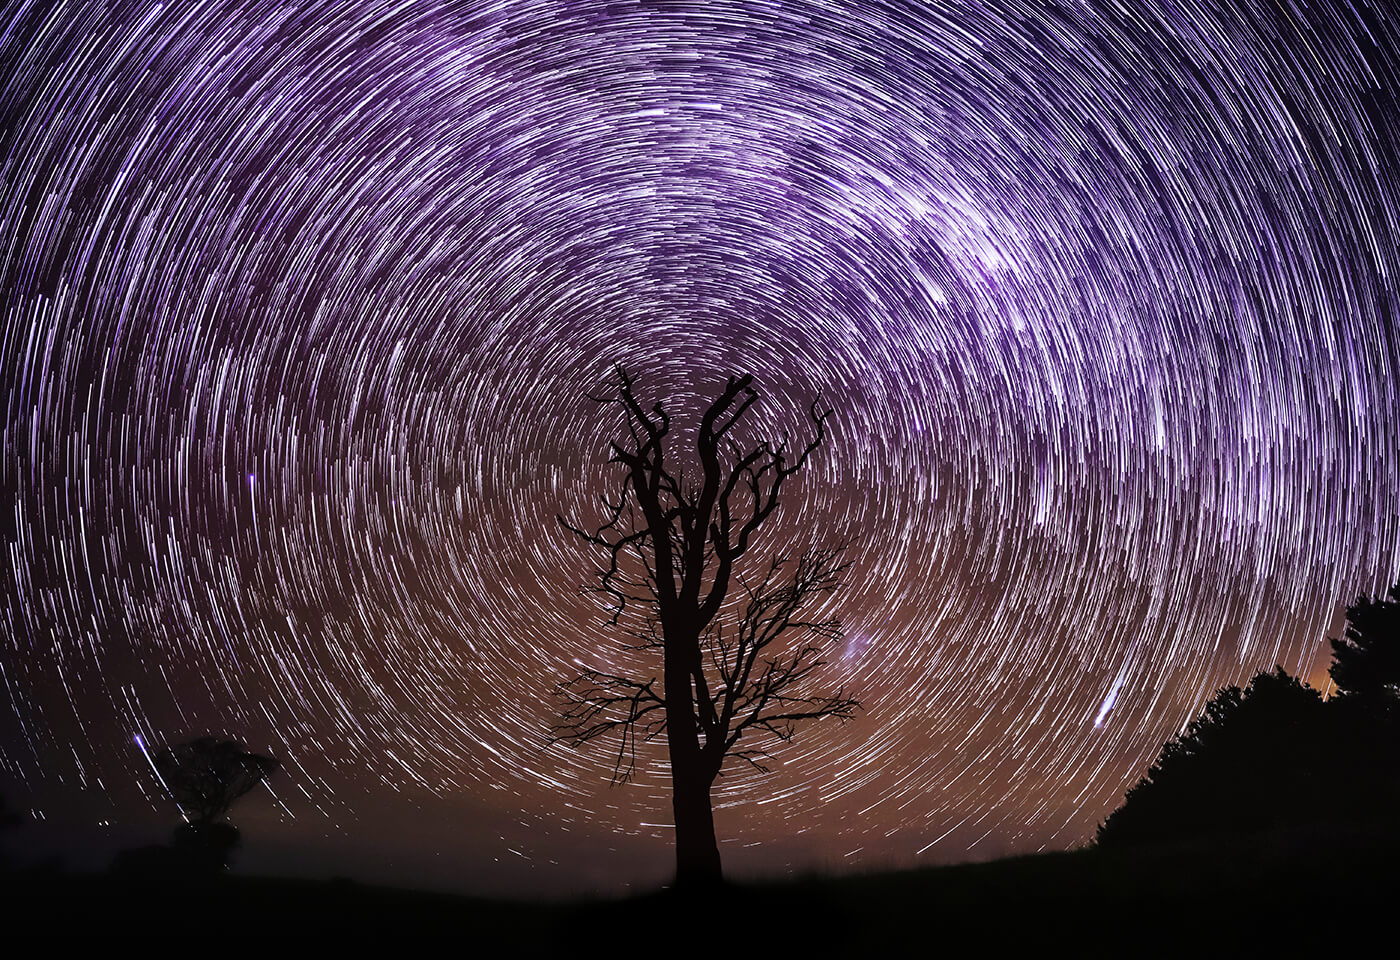 Long exposure image of star trails over silhouette of a tree - sample photo by Canon EOS 6D Mark II